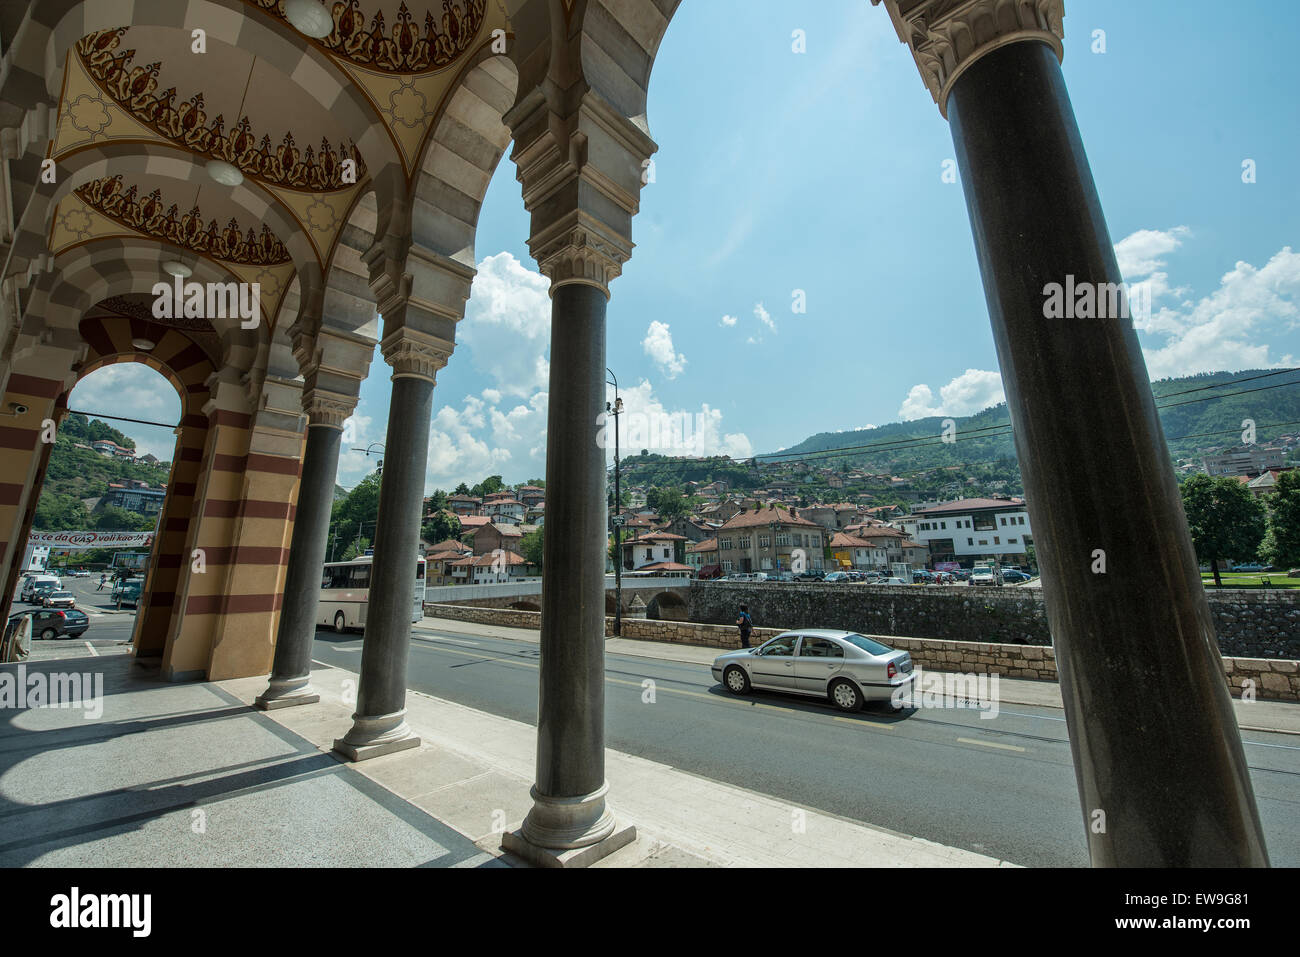 The National and University Library of Bosnia and Herzegovina in Sarajevo - Stock Image